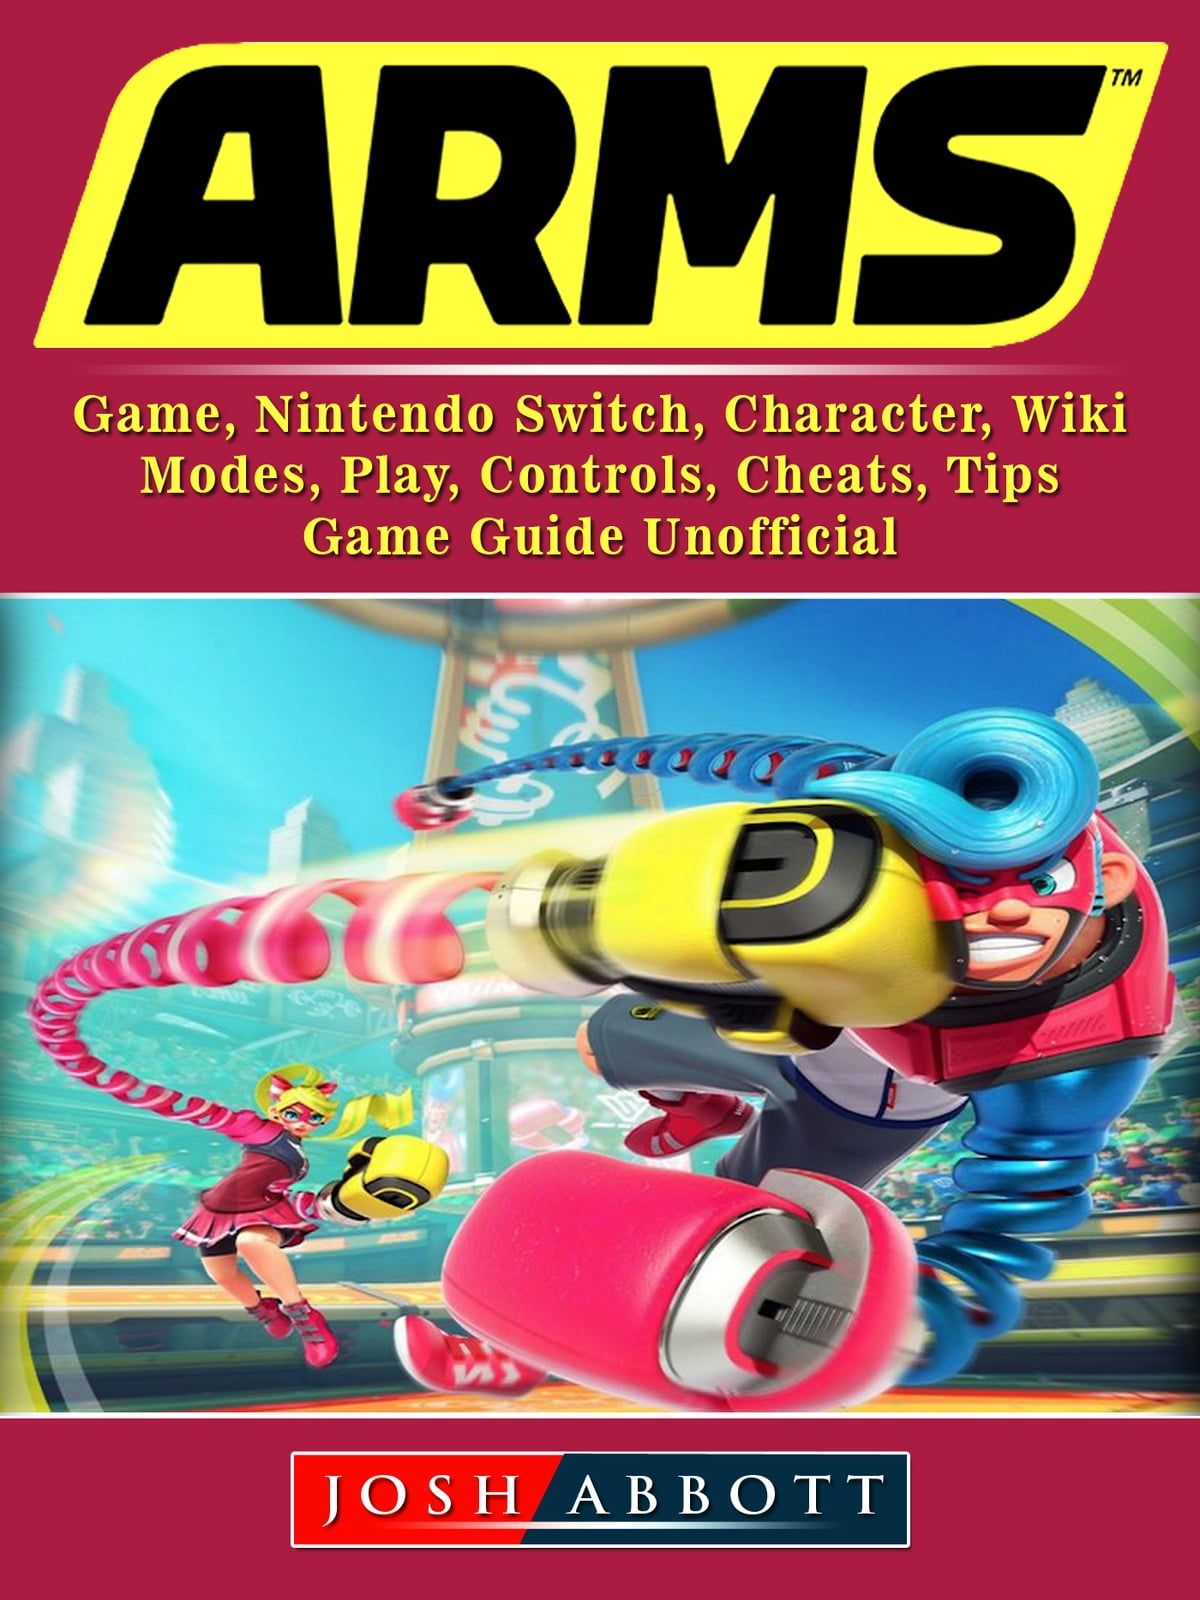 Arms Game, Nintendo Switch, Character, Wiki, Modes, Play, Controls, Cheats,  Tips, Game Guide Unofficial ebook by Josh Abbott - Rakuten Kobo